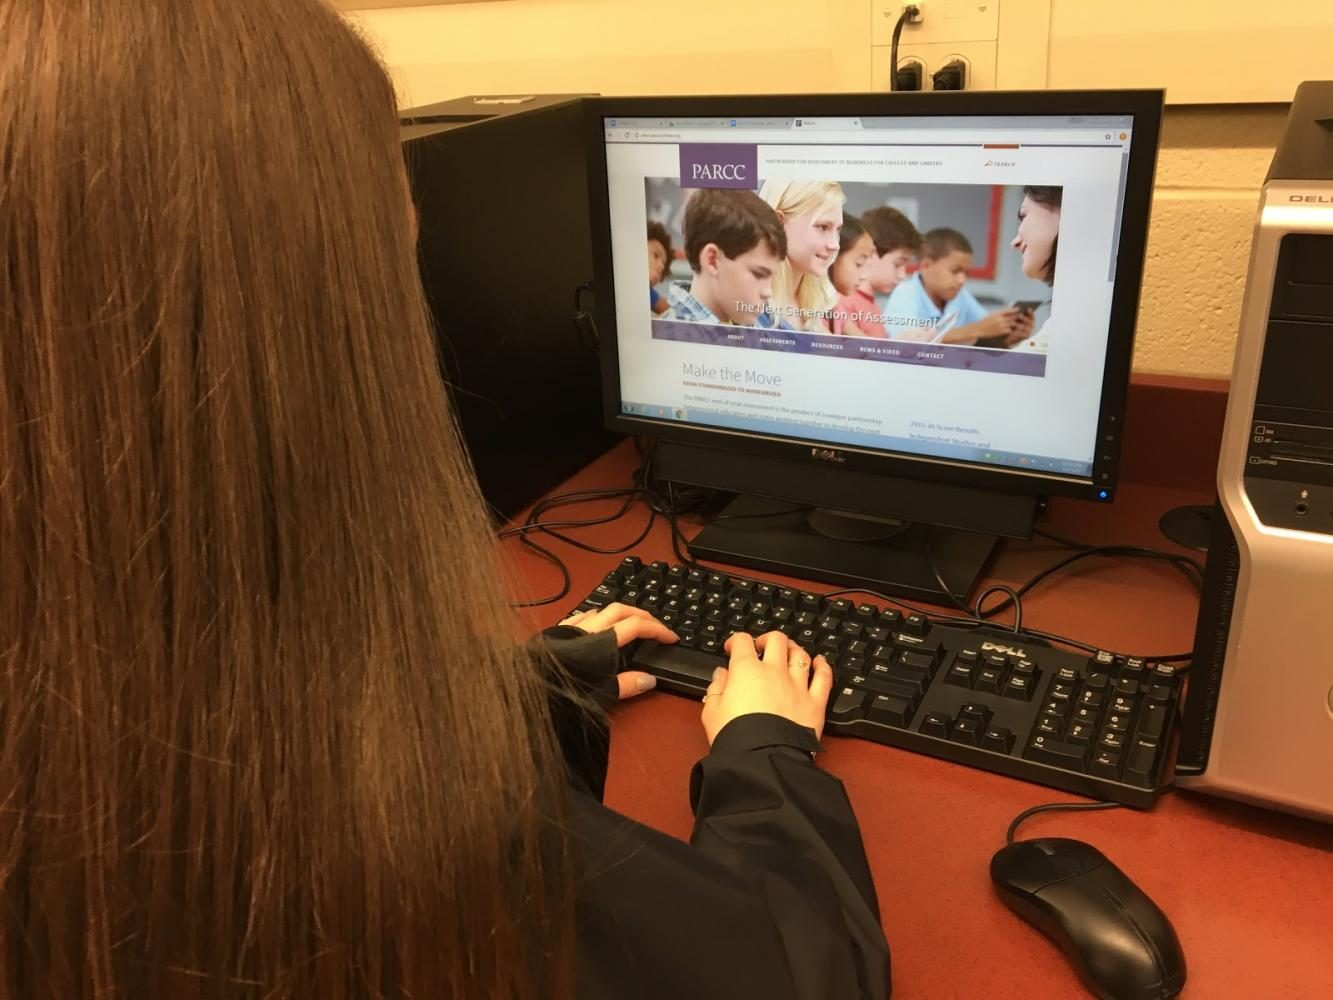 A student types away at her computer while researching the PARCC.